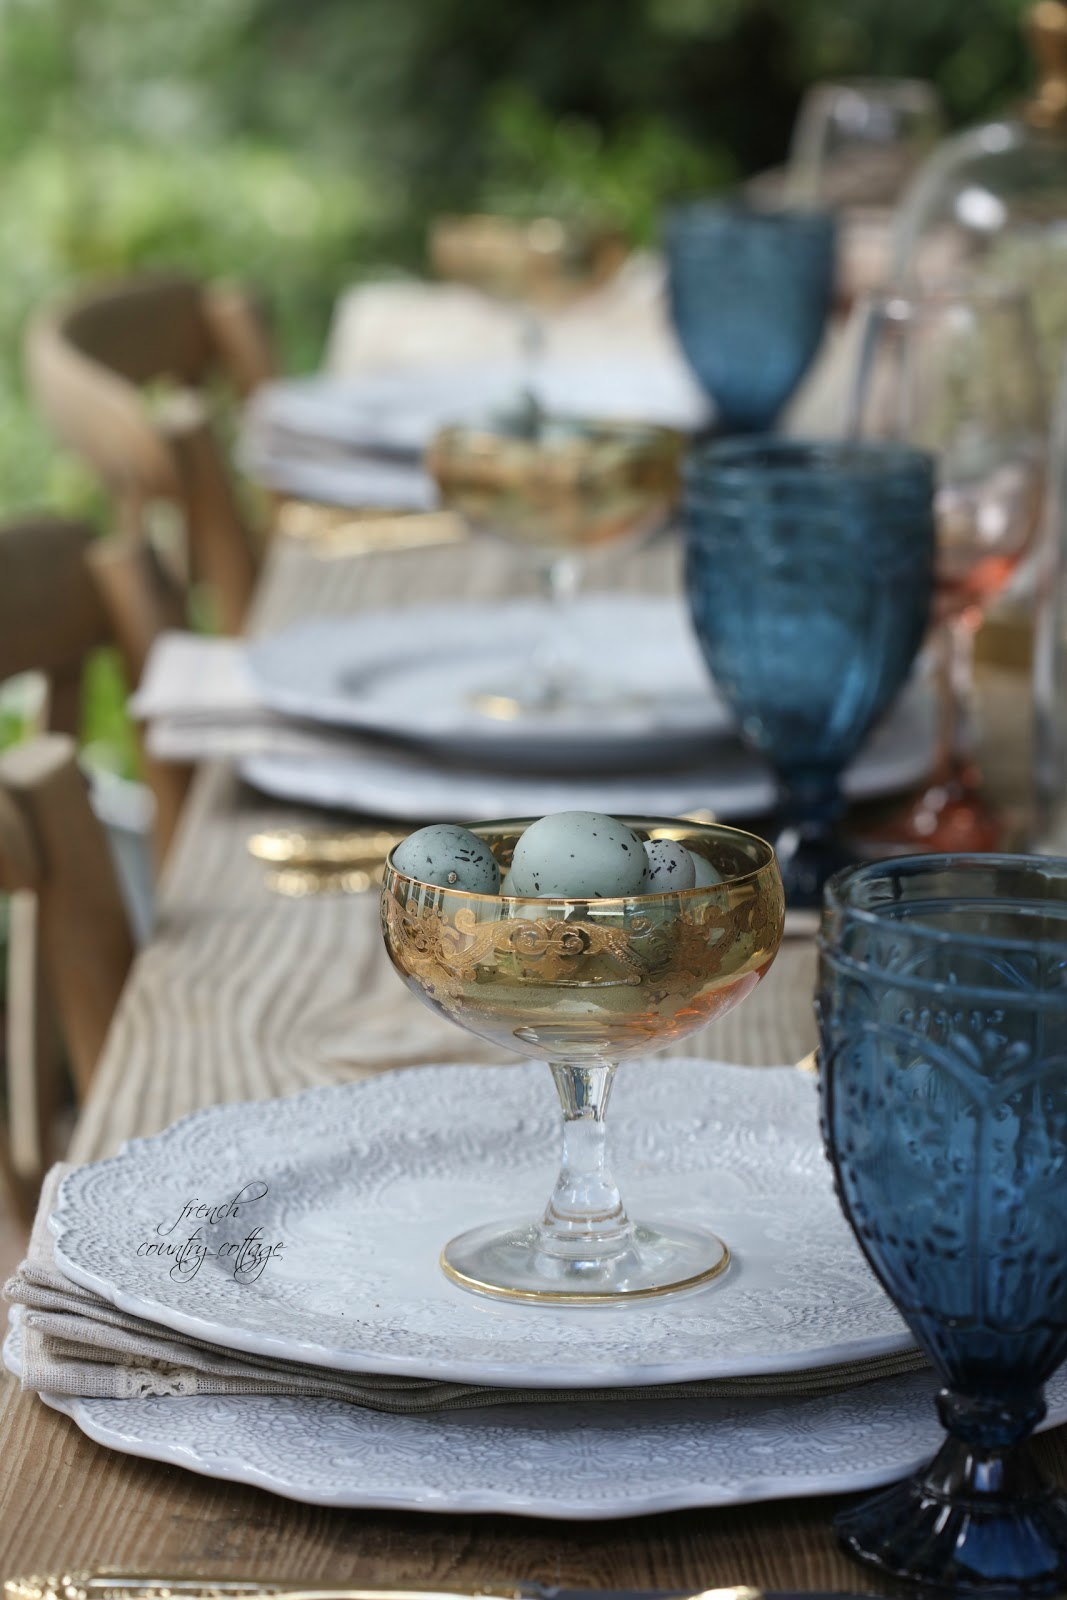 5 ideas for a beautiful Easter table - FRENCH COUNTRY COTTAGE